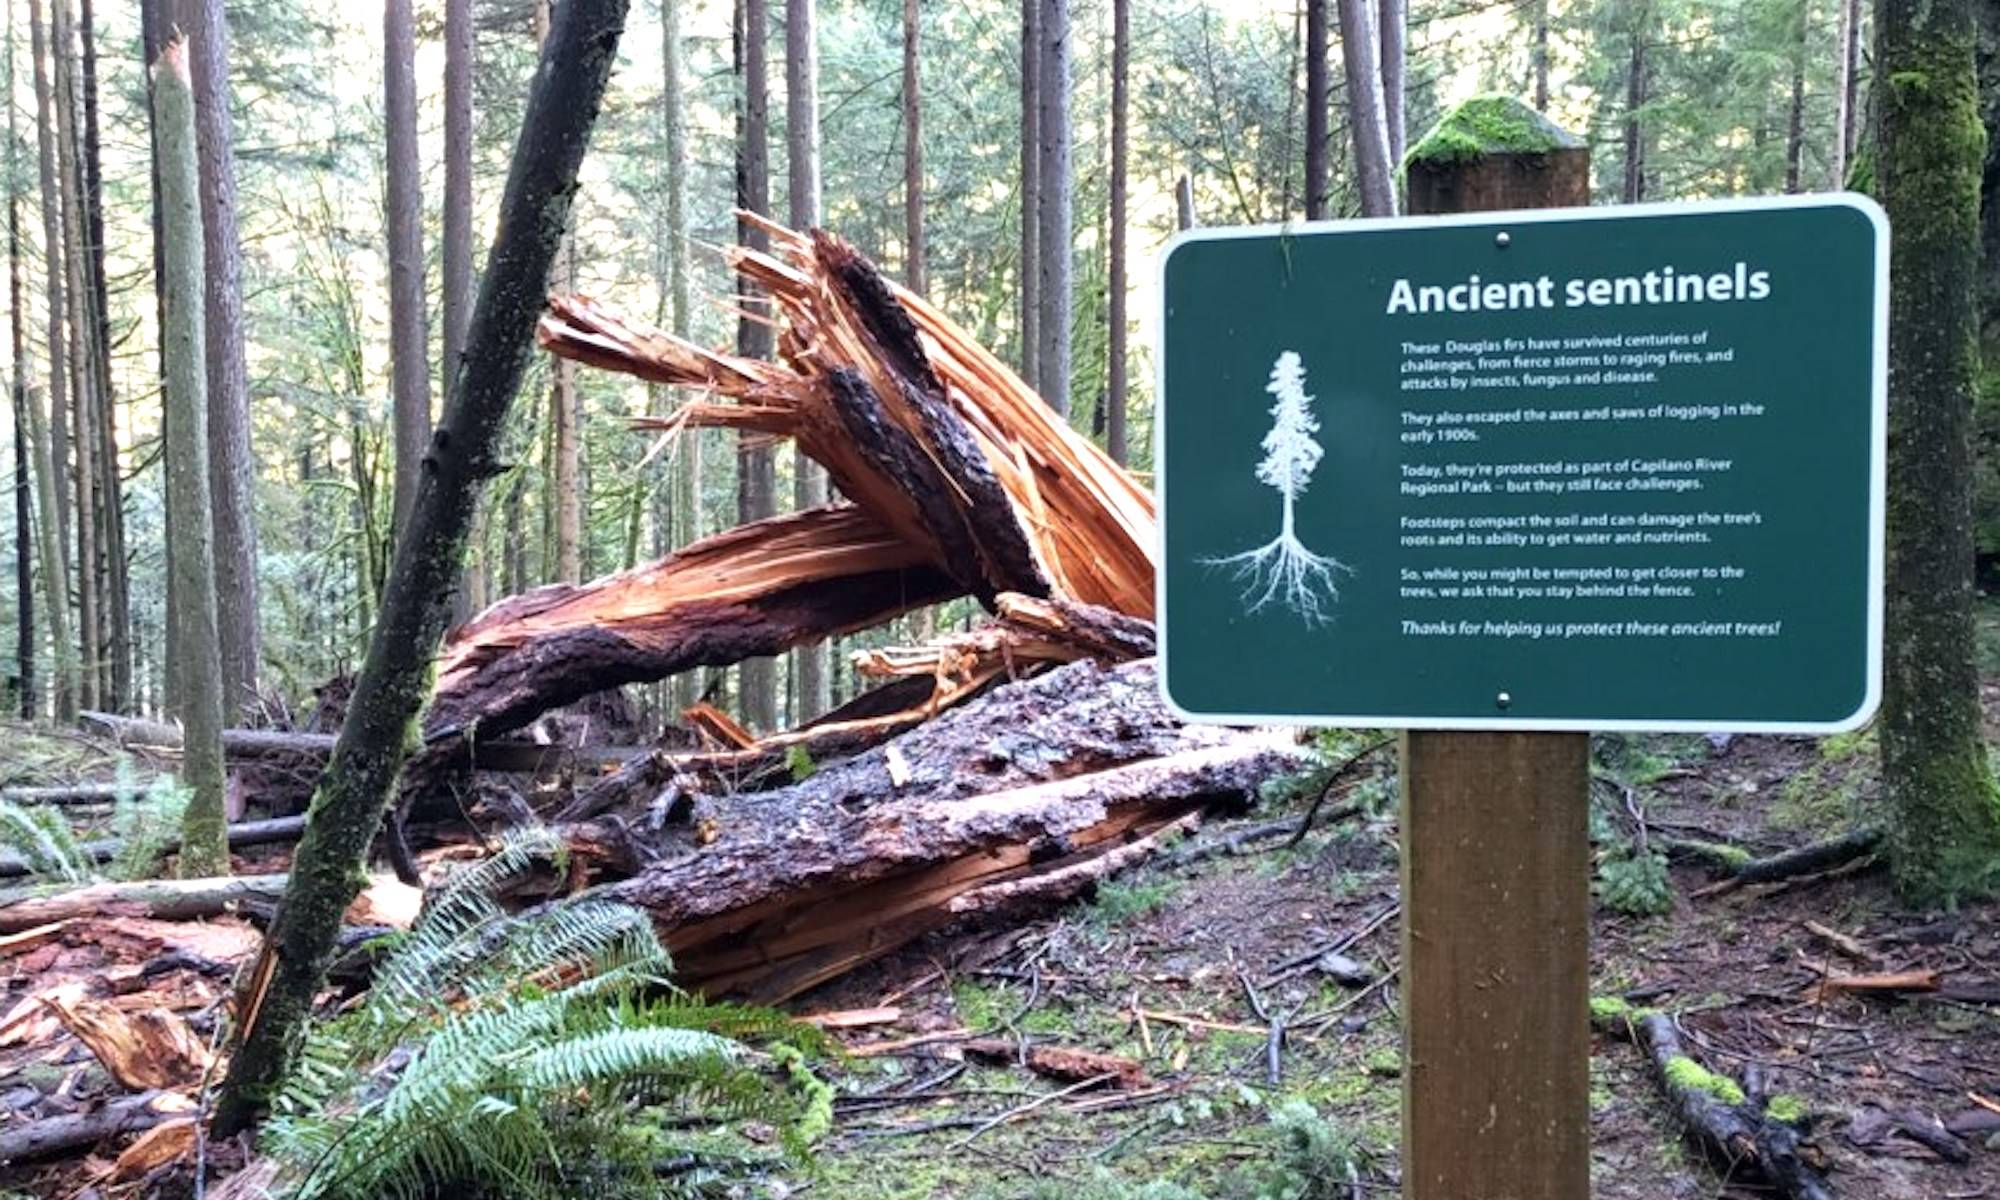 The Douglas fir tree, estimated to be around 500 years old, two metres in diameter, and 58 metres tall, fell on Dec. 8, 2020 due to natural causes. (Submitted photo)